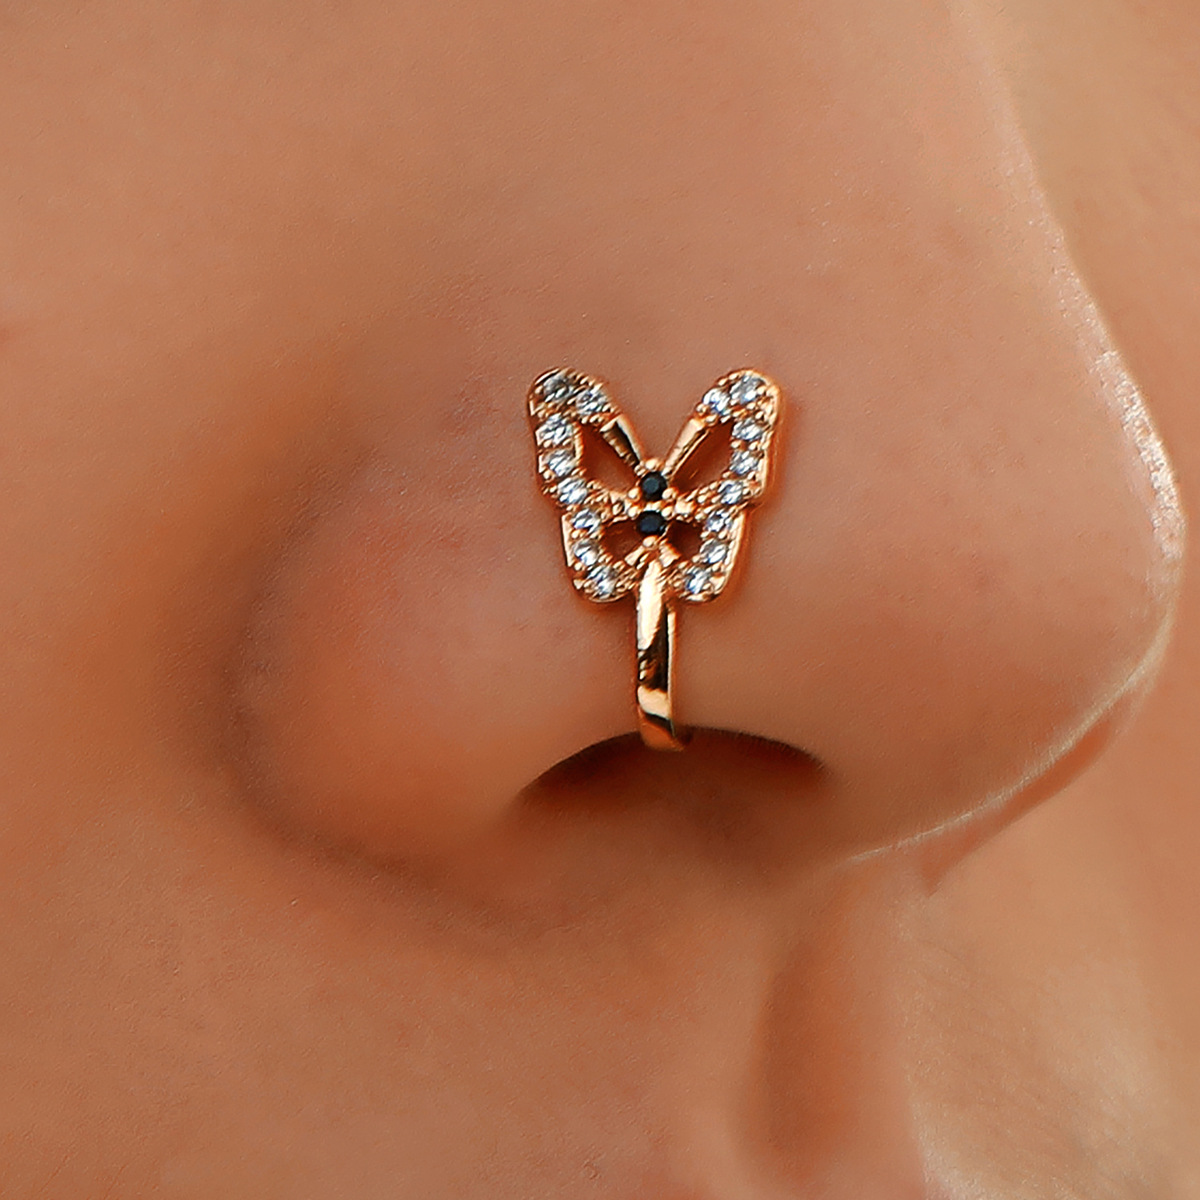 1Pc Crystal Butterfly Fake Nose Ring Non Piercing Clip On Nose Ring Indian Style Nose Cuff Fake Piercing Septum Nariz Jewelry